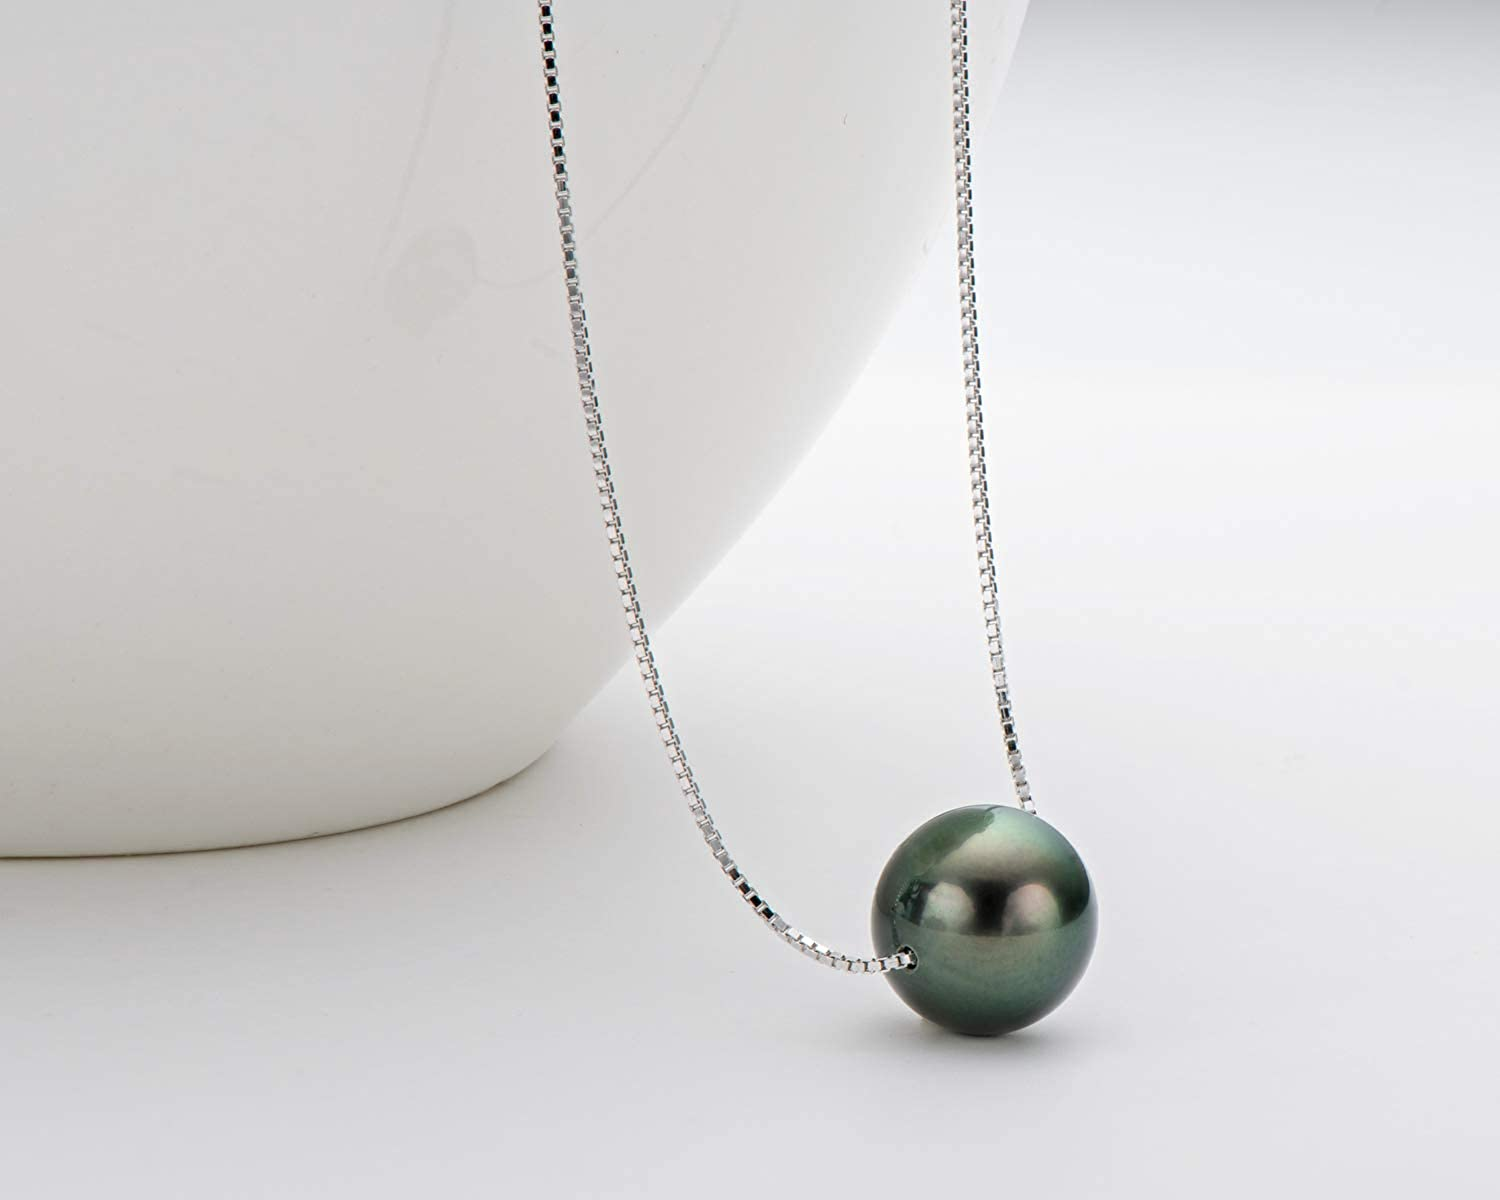 Natural Tahitian saltwater black pearl necklace Beachy floating sparkly seashell delicate pendant Choker Unisex b8842 Gift for women men him